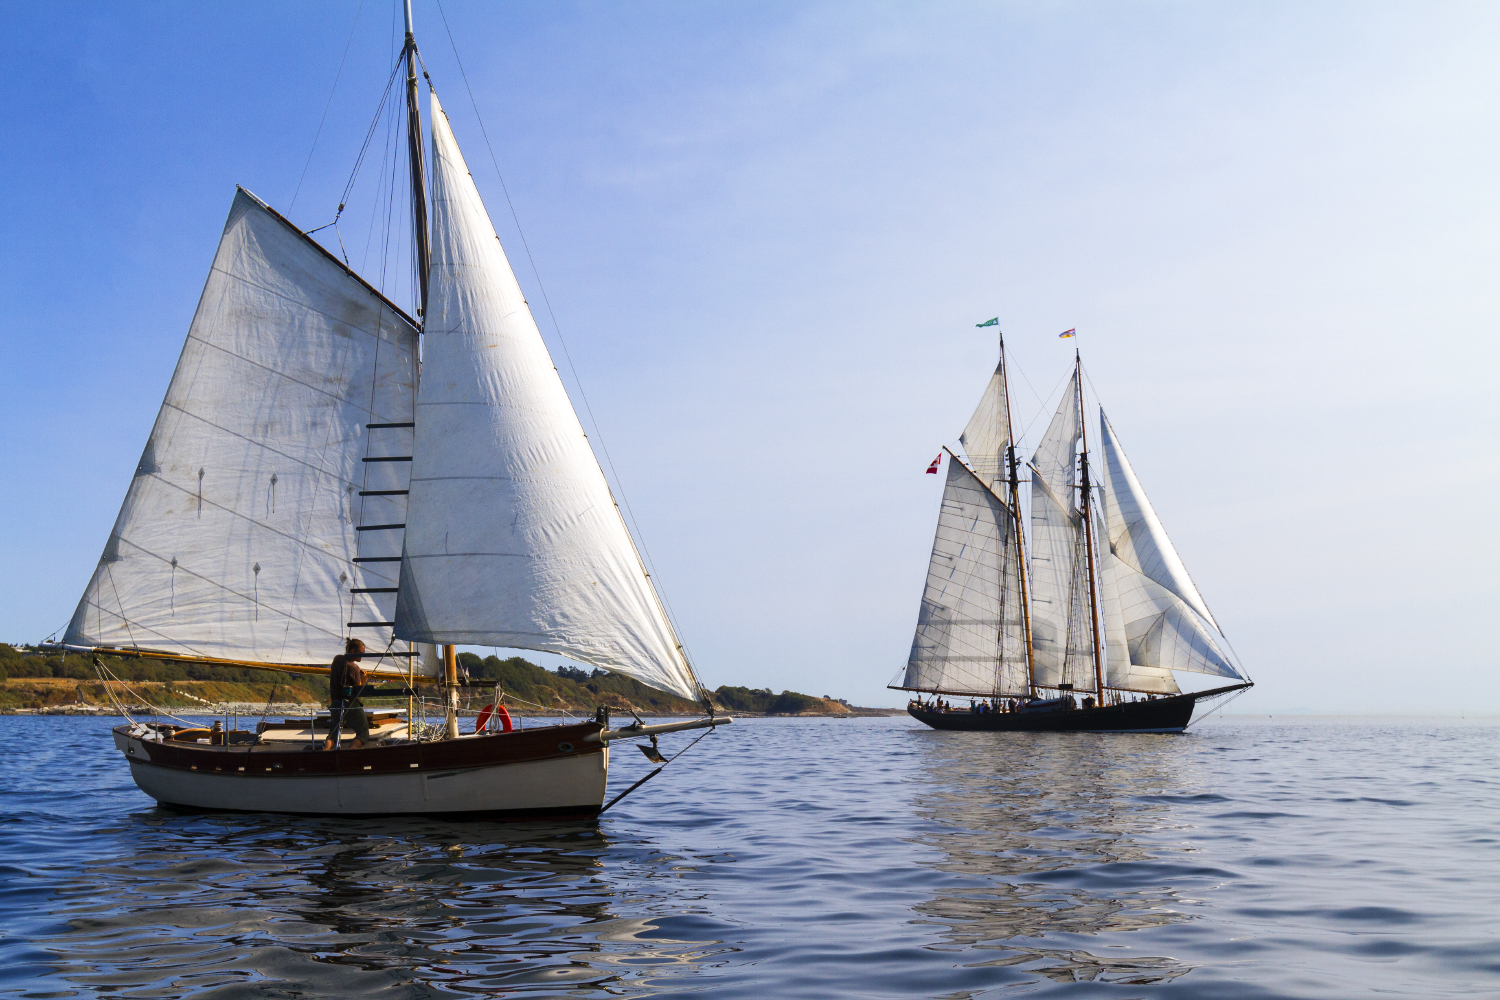 Sailpast at Classic Boat Festival 2017 - Courtesy of Tom Sztanek